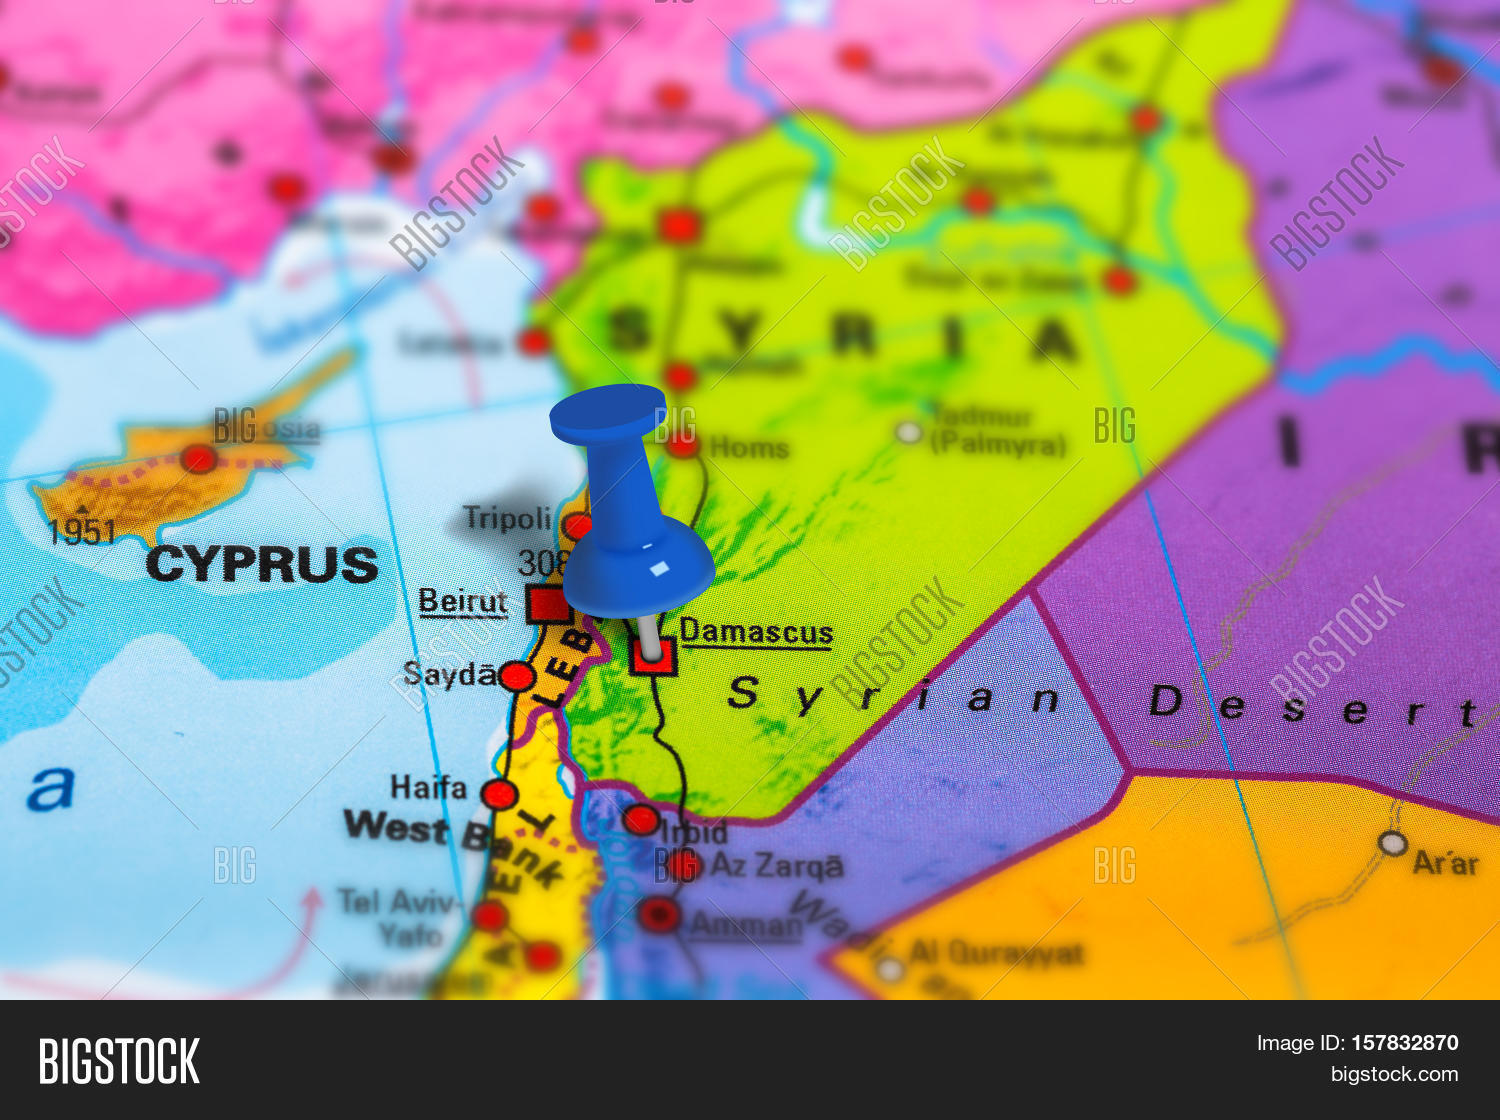 Damascus syria pinned on colorful image photo bigstock damascus in syria pinned on colorful political map of asia geopolitical school atlas tilt gumiabroncs Images